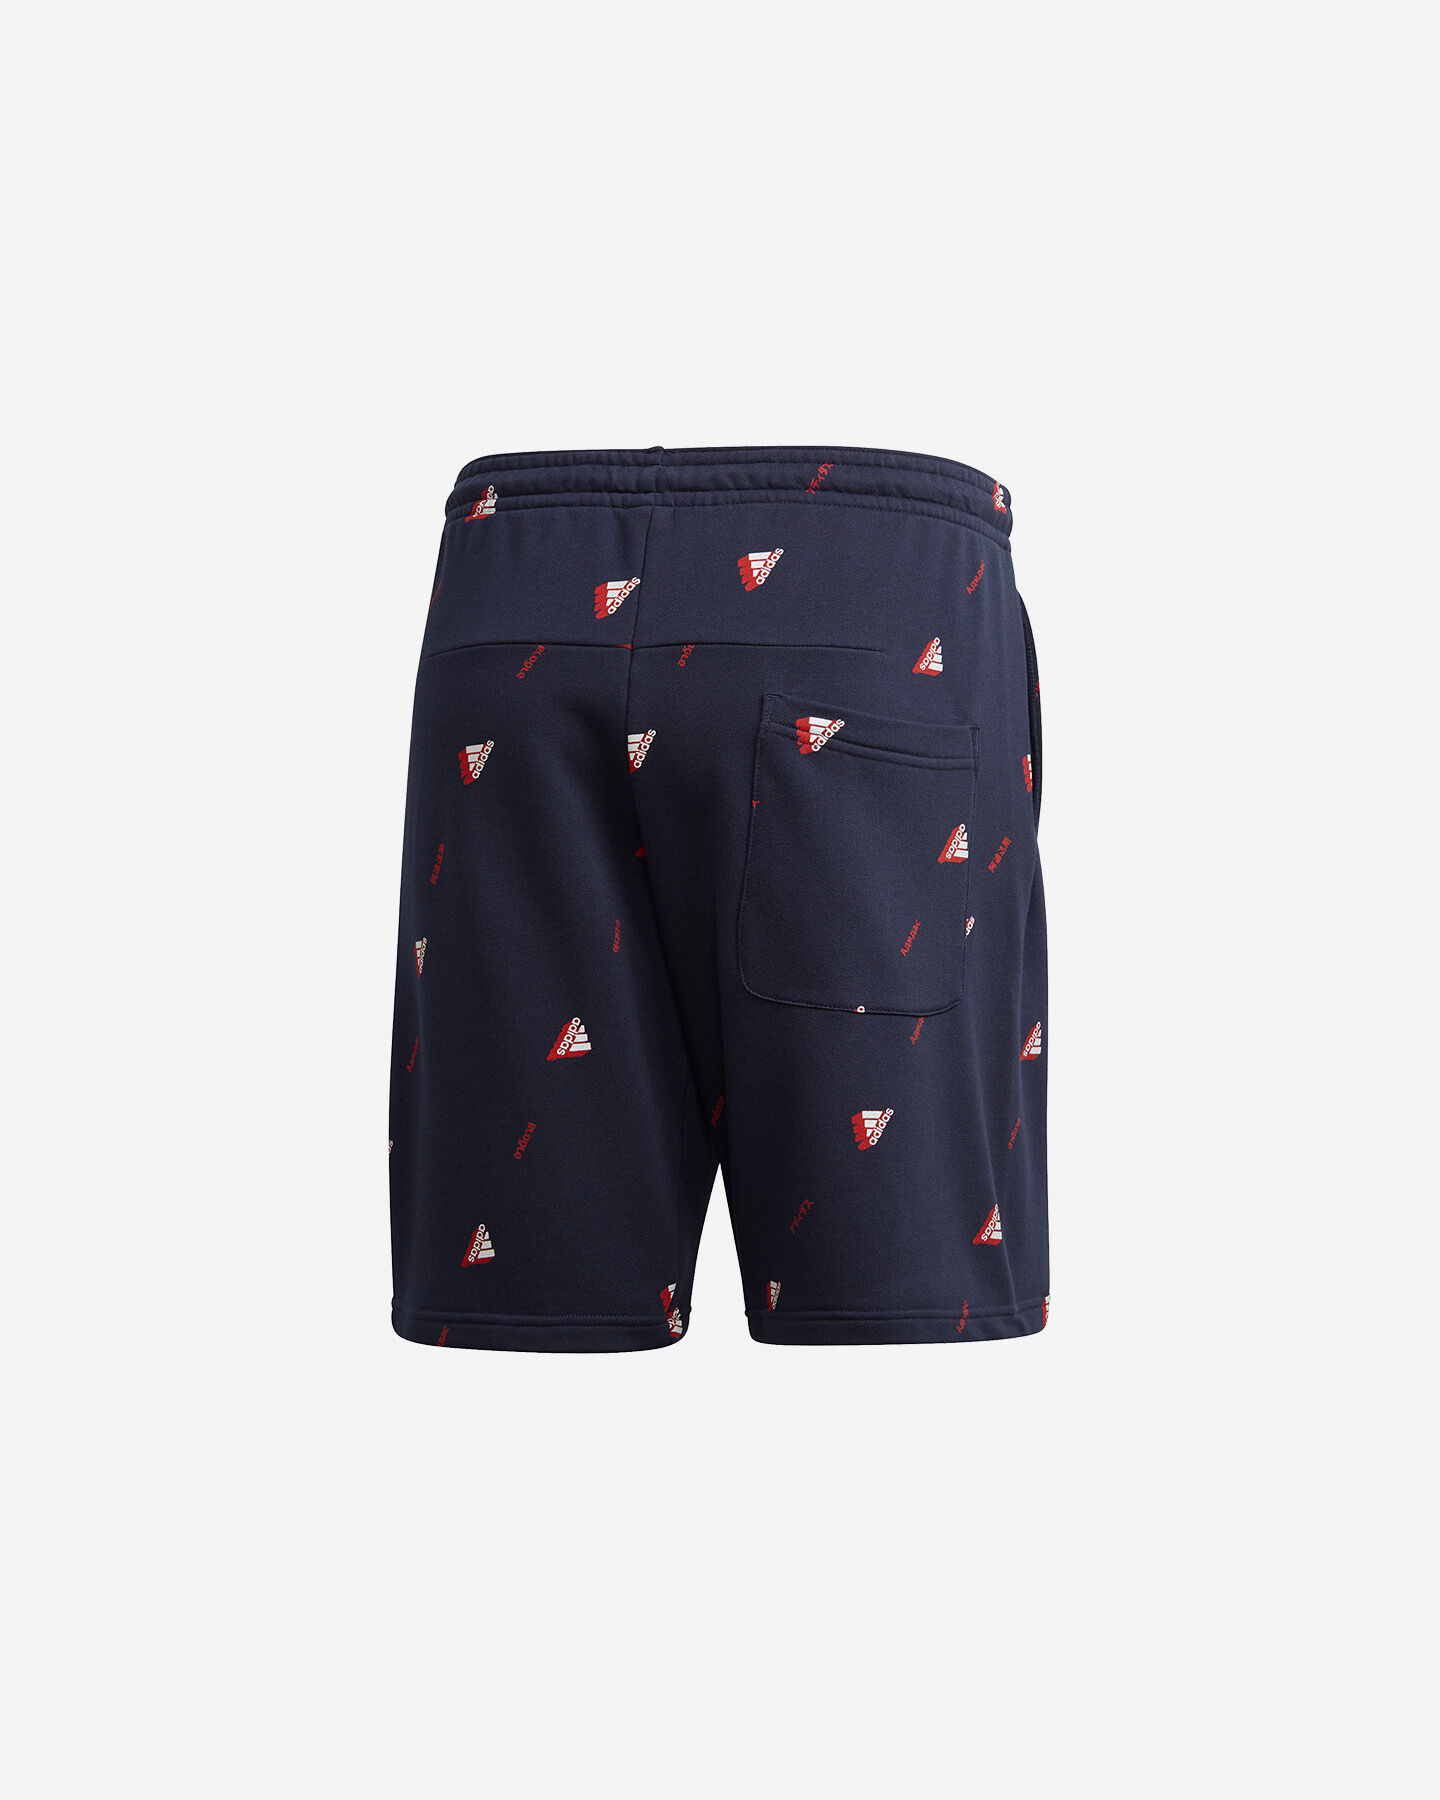 Pantaloncini ADIDAS MUST HAVES M S5153857 scatto 1